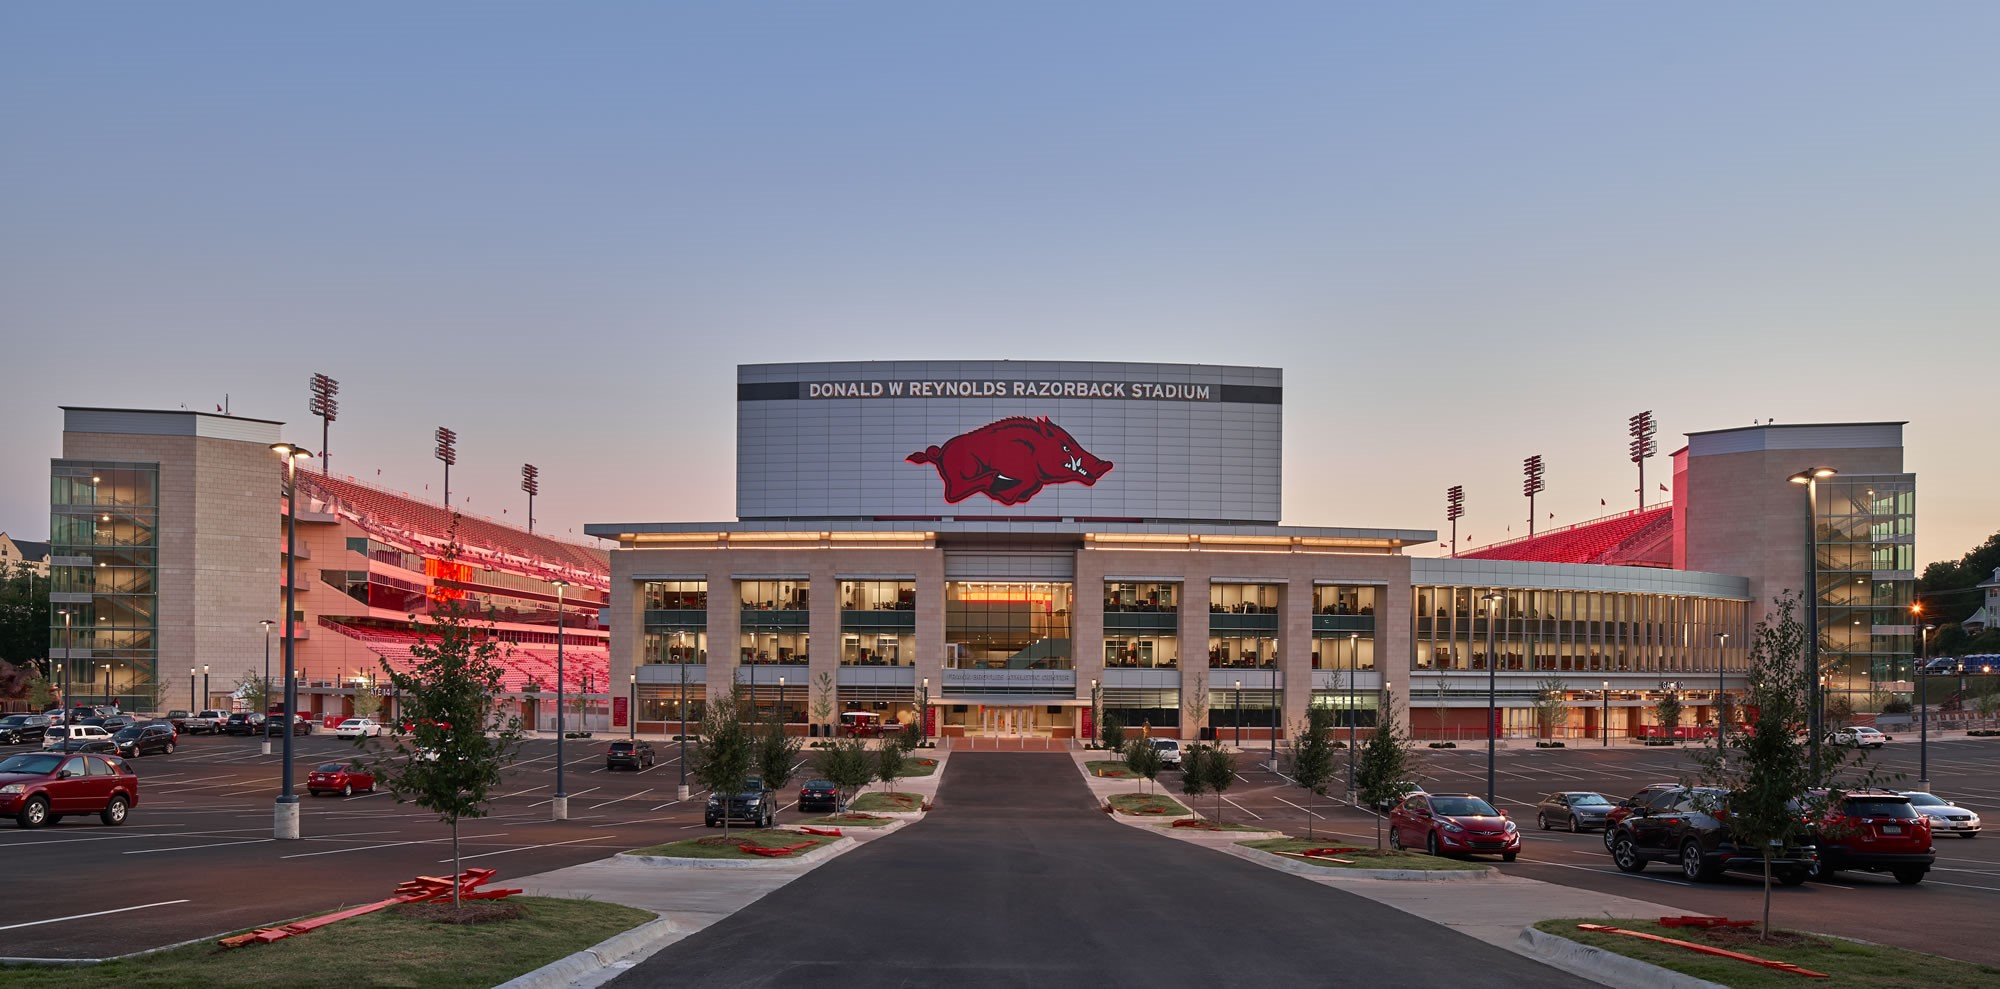 I110: University of Arkansas Stadium